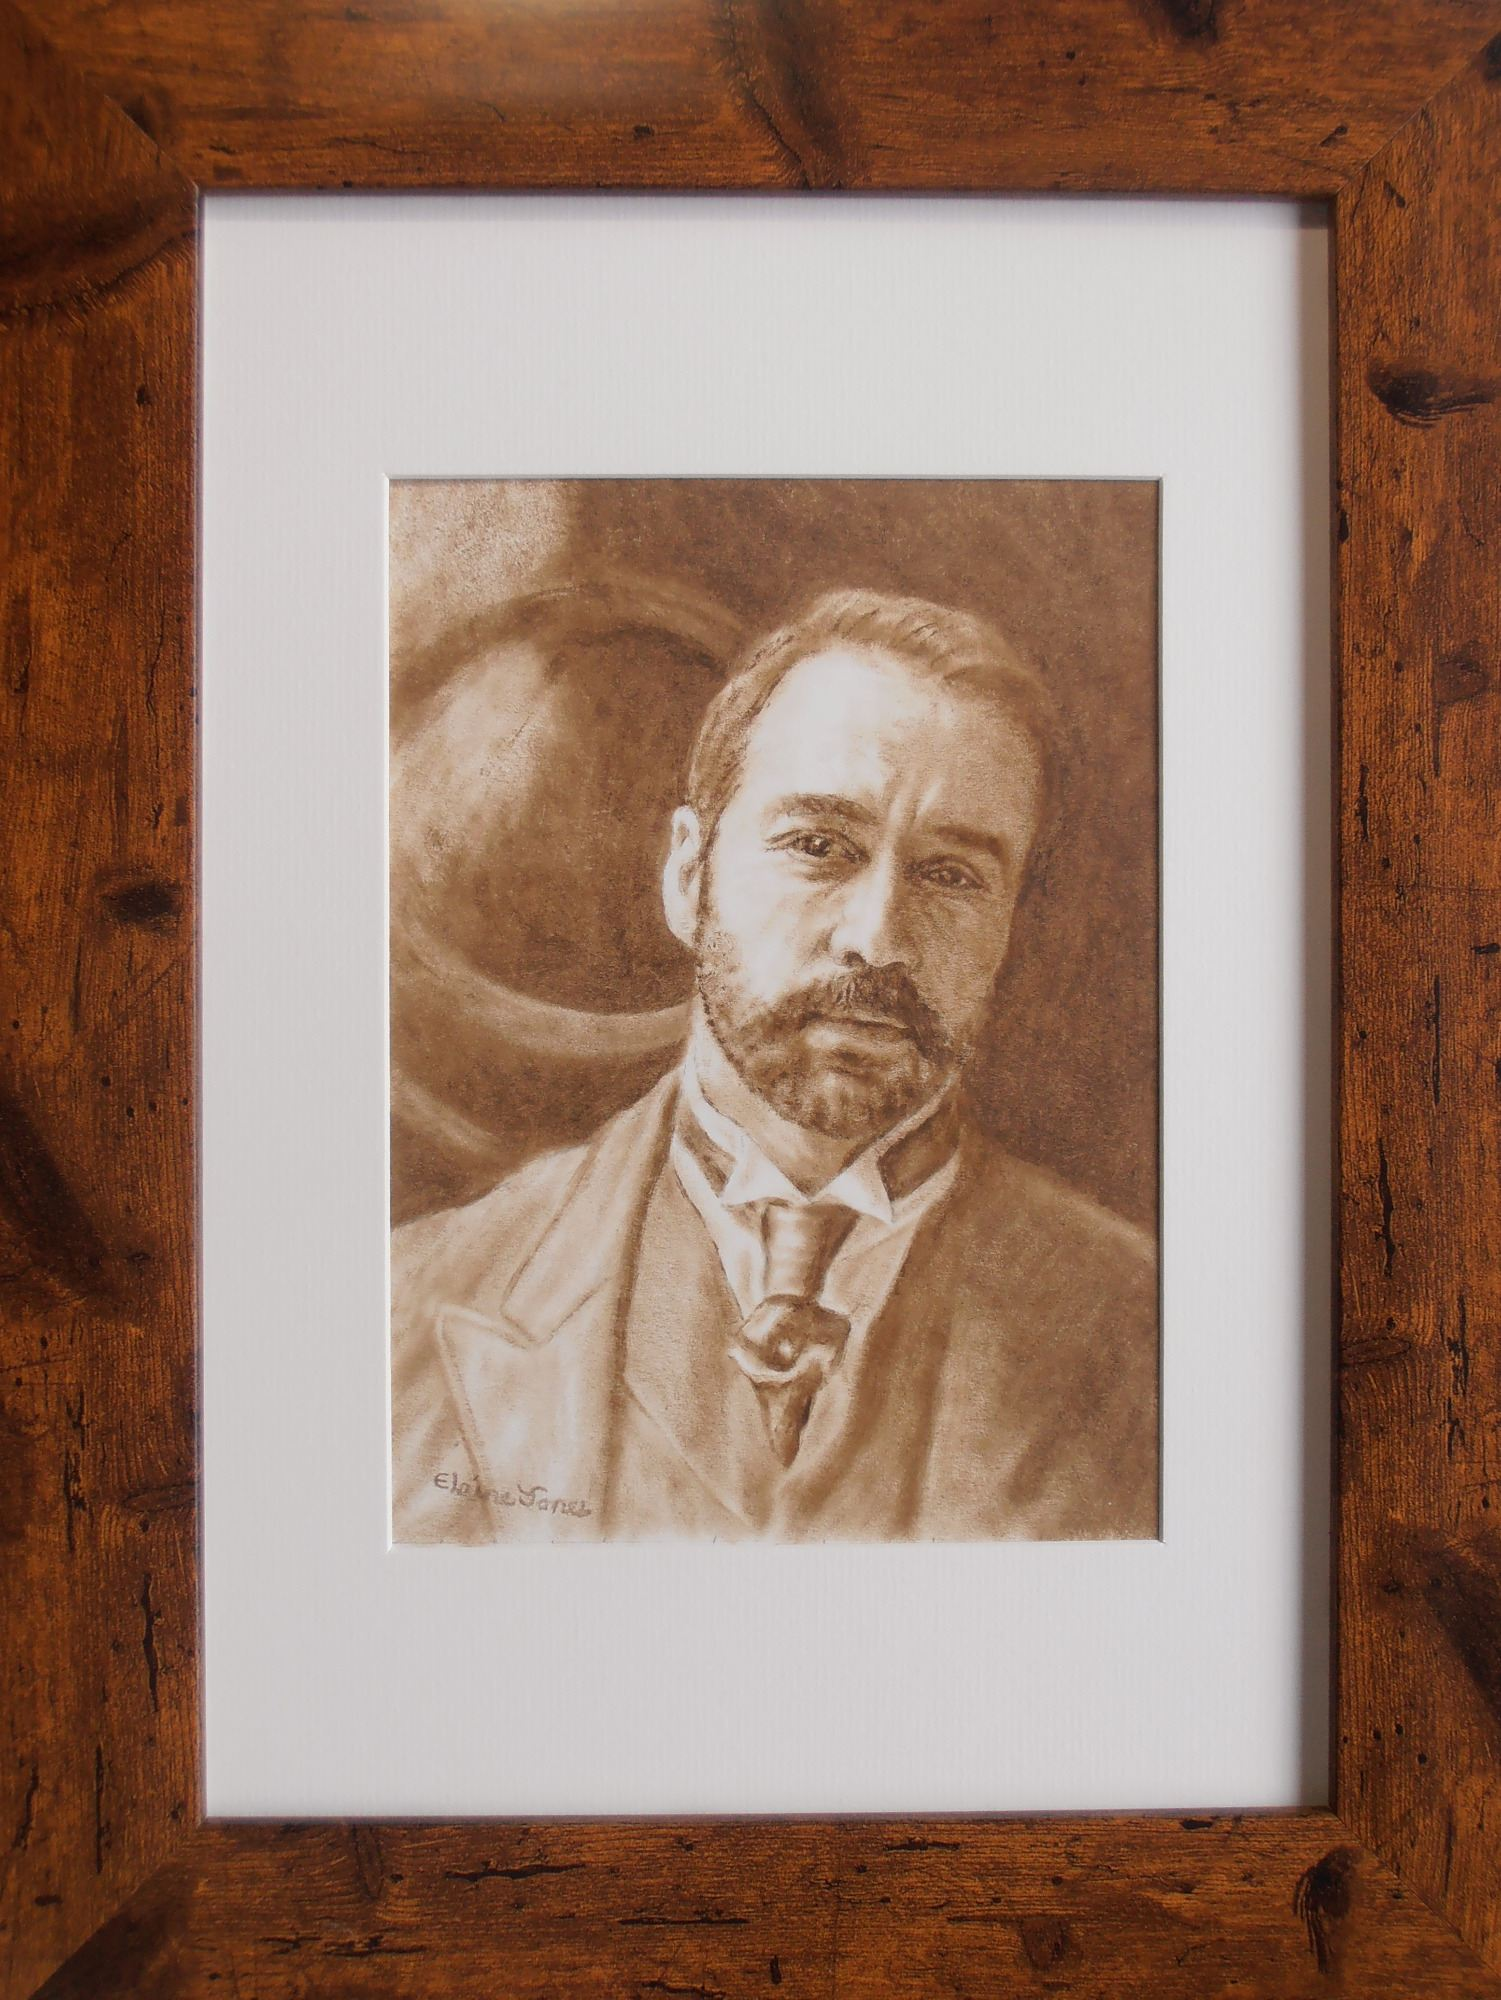 jeremy piven as mr selfridge framed 10 nov